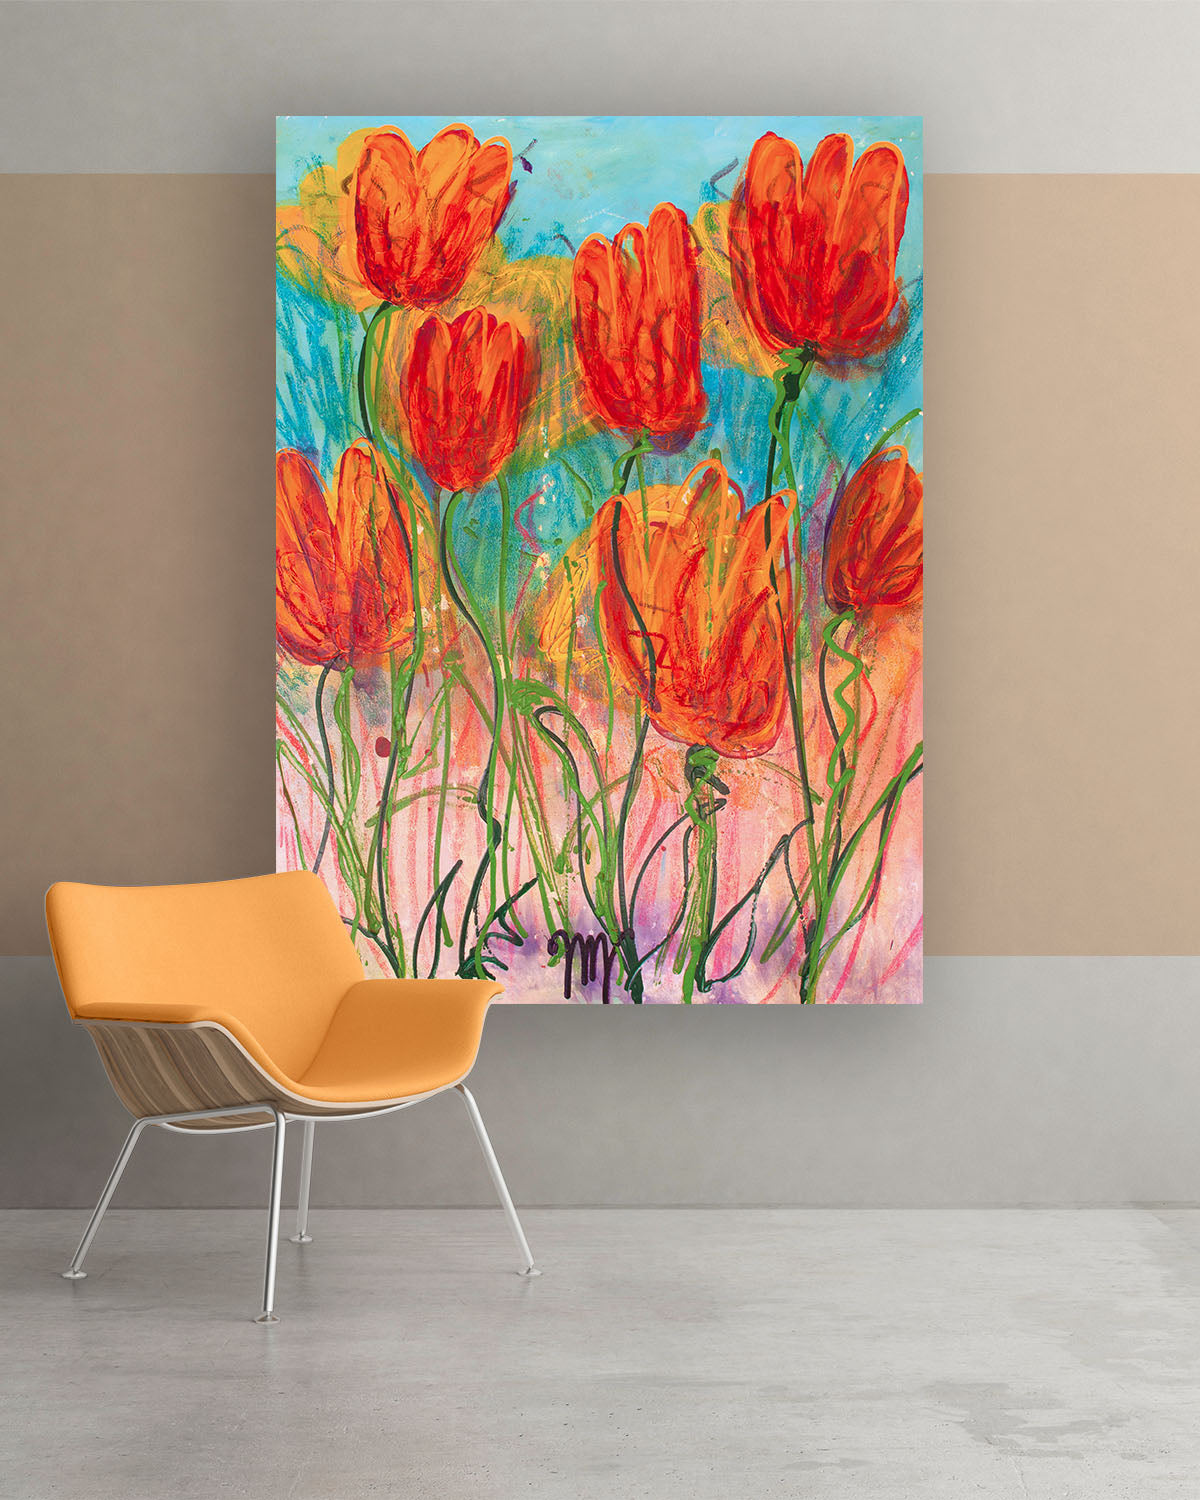 Lily, Original Abstract Flower Art Painting by Lisa Marie Jones